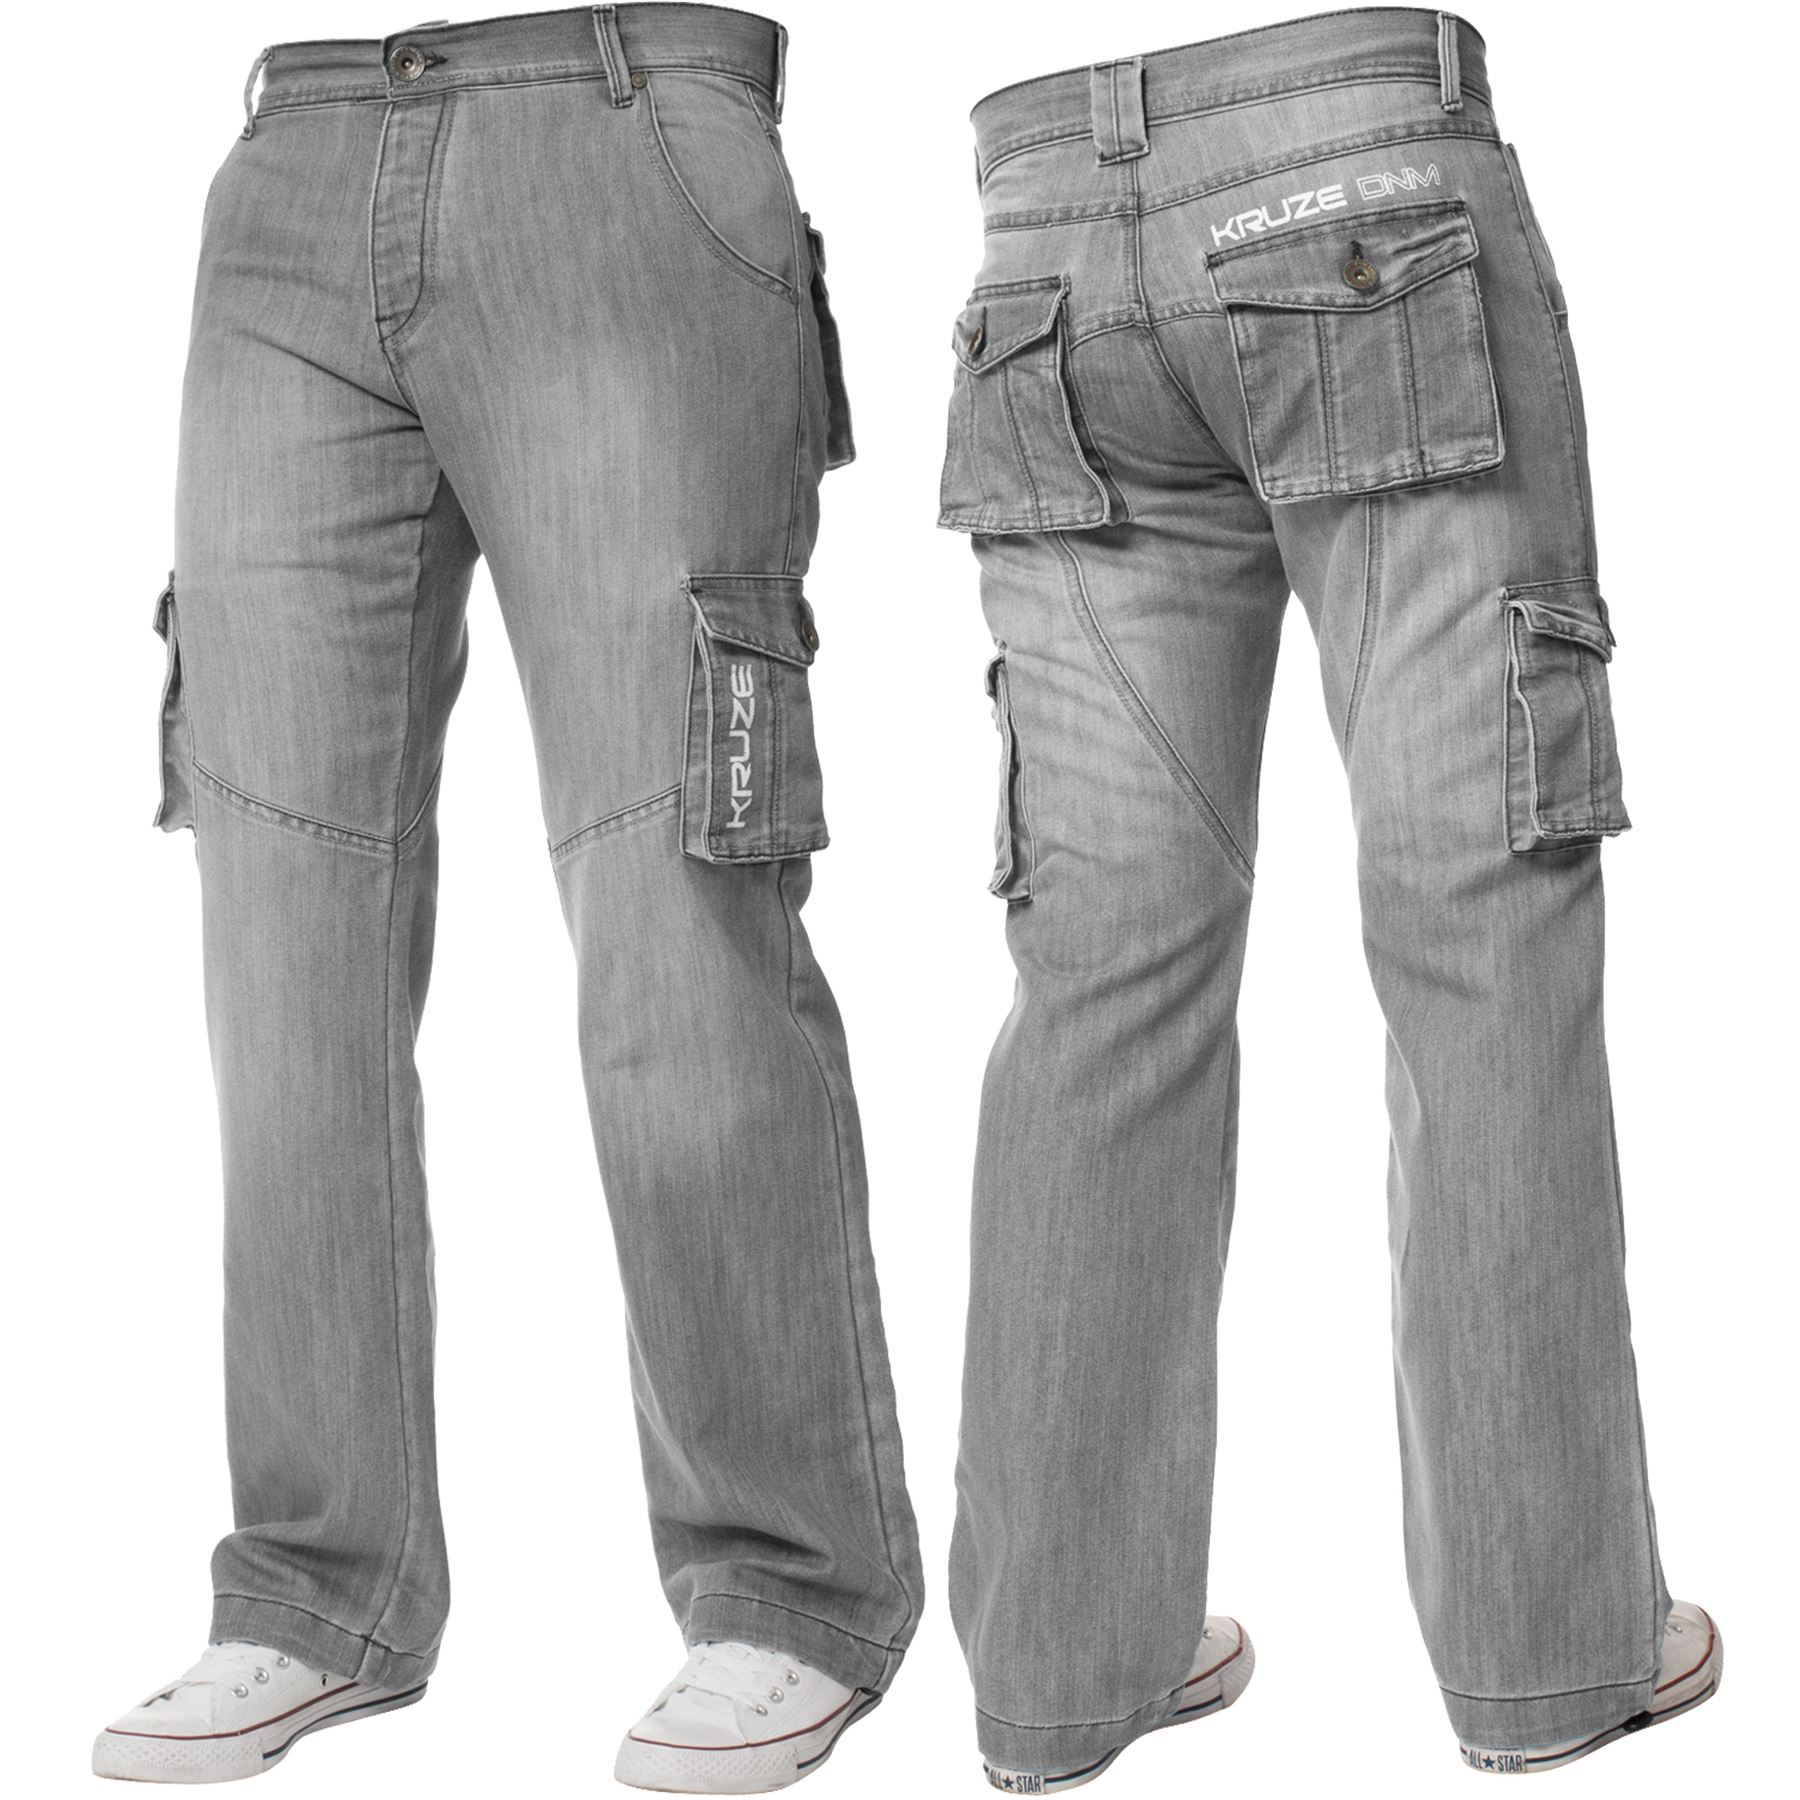 Kruze-Mens-Cargo-Combat-Jeans-Casual-Work-Denim-Pants-Big-Tall-All-Waist-Sizes thumbnail 27